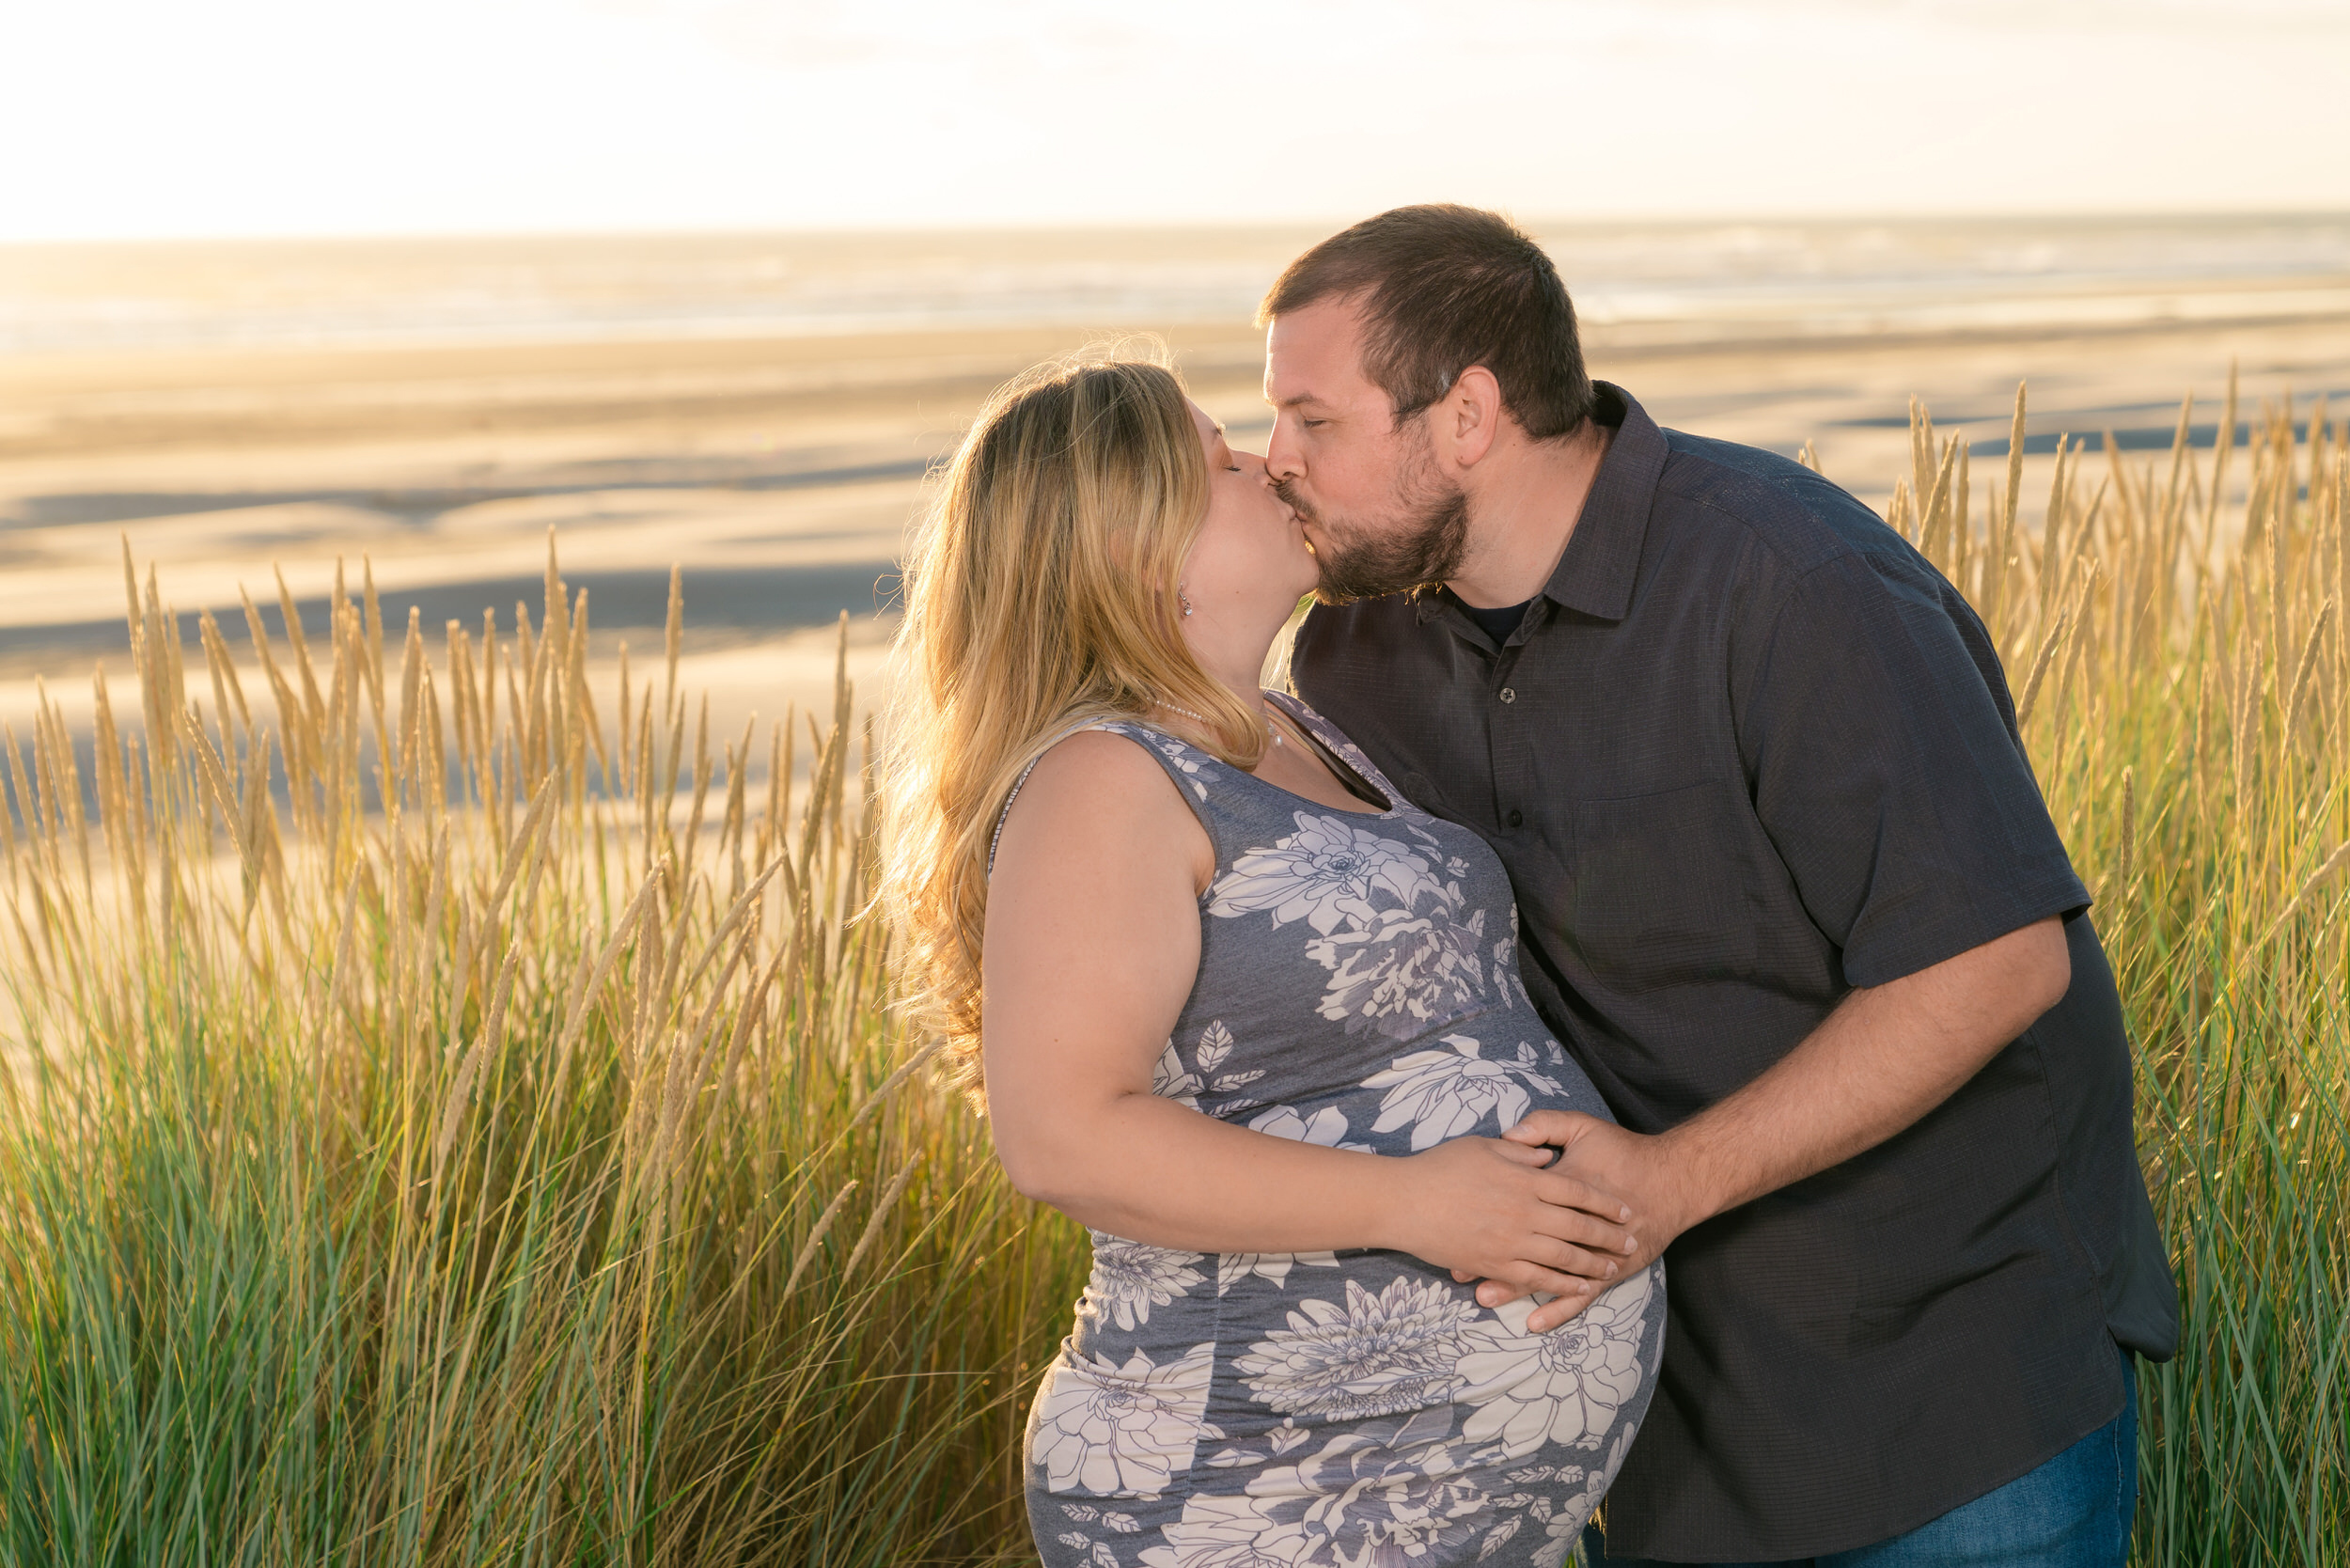 Oregon-Maternity-Photography .jpg